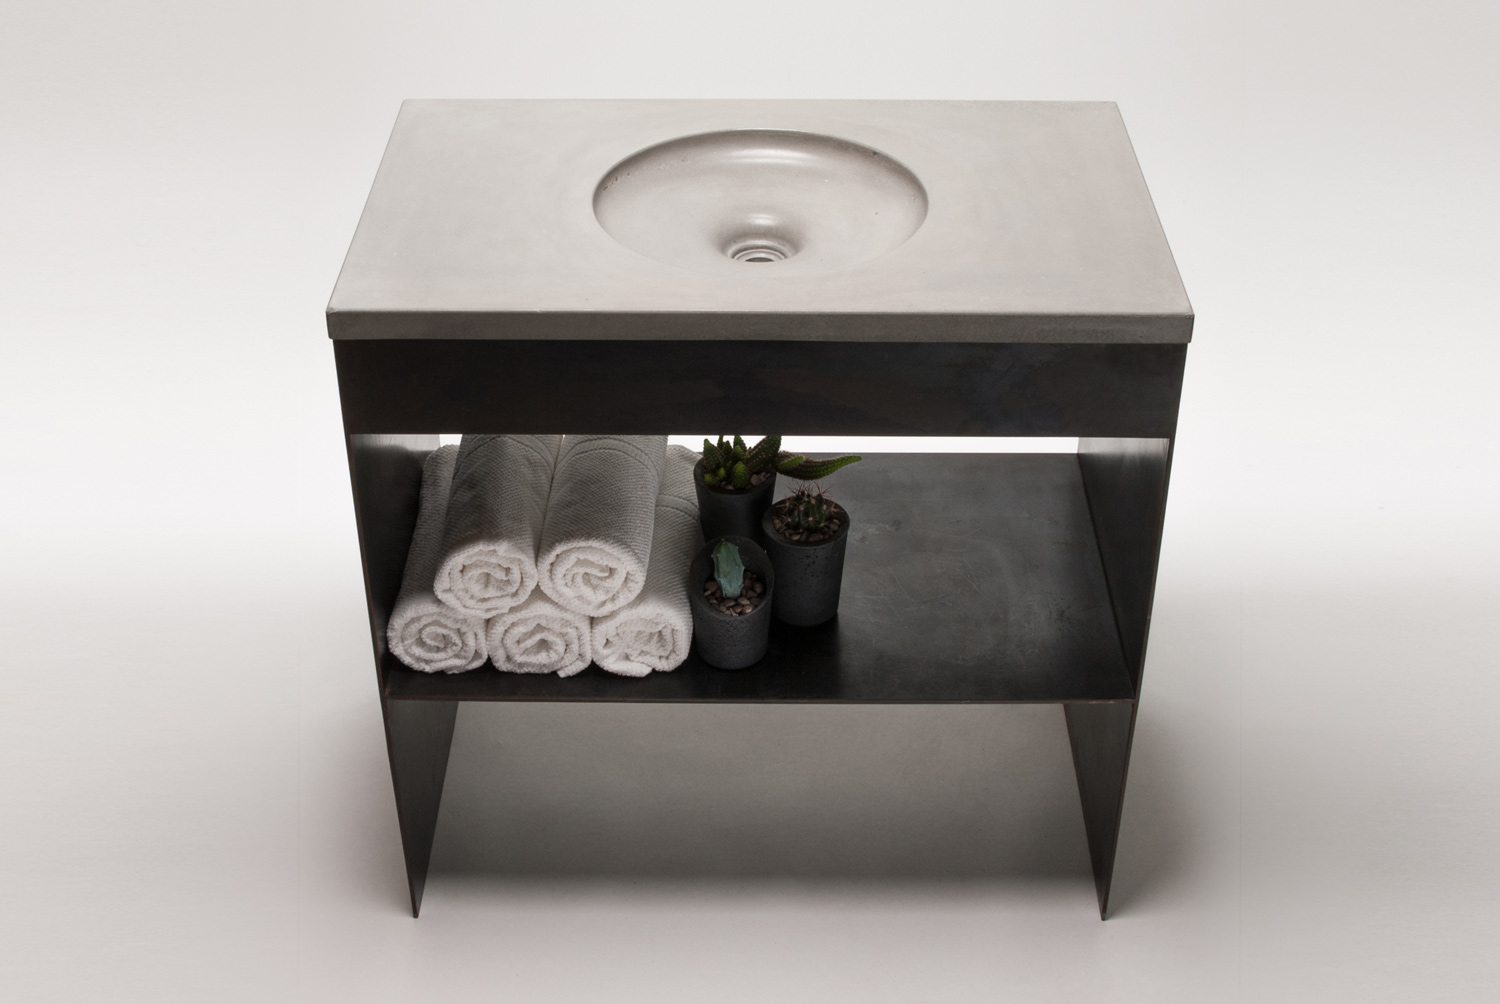 The Harrison Concrete Sink is a simple round concrete sink base, shown here on a black steel base